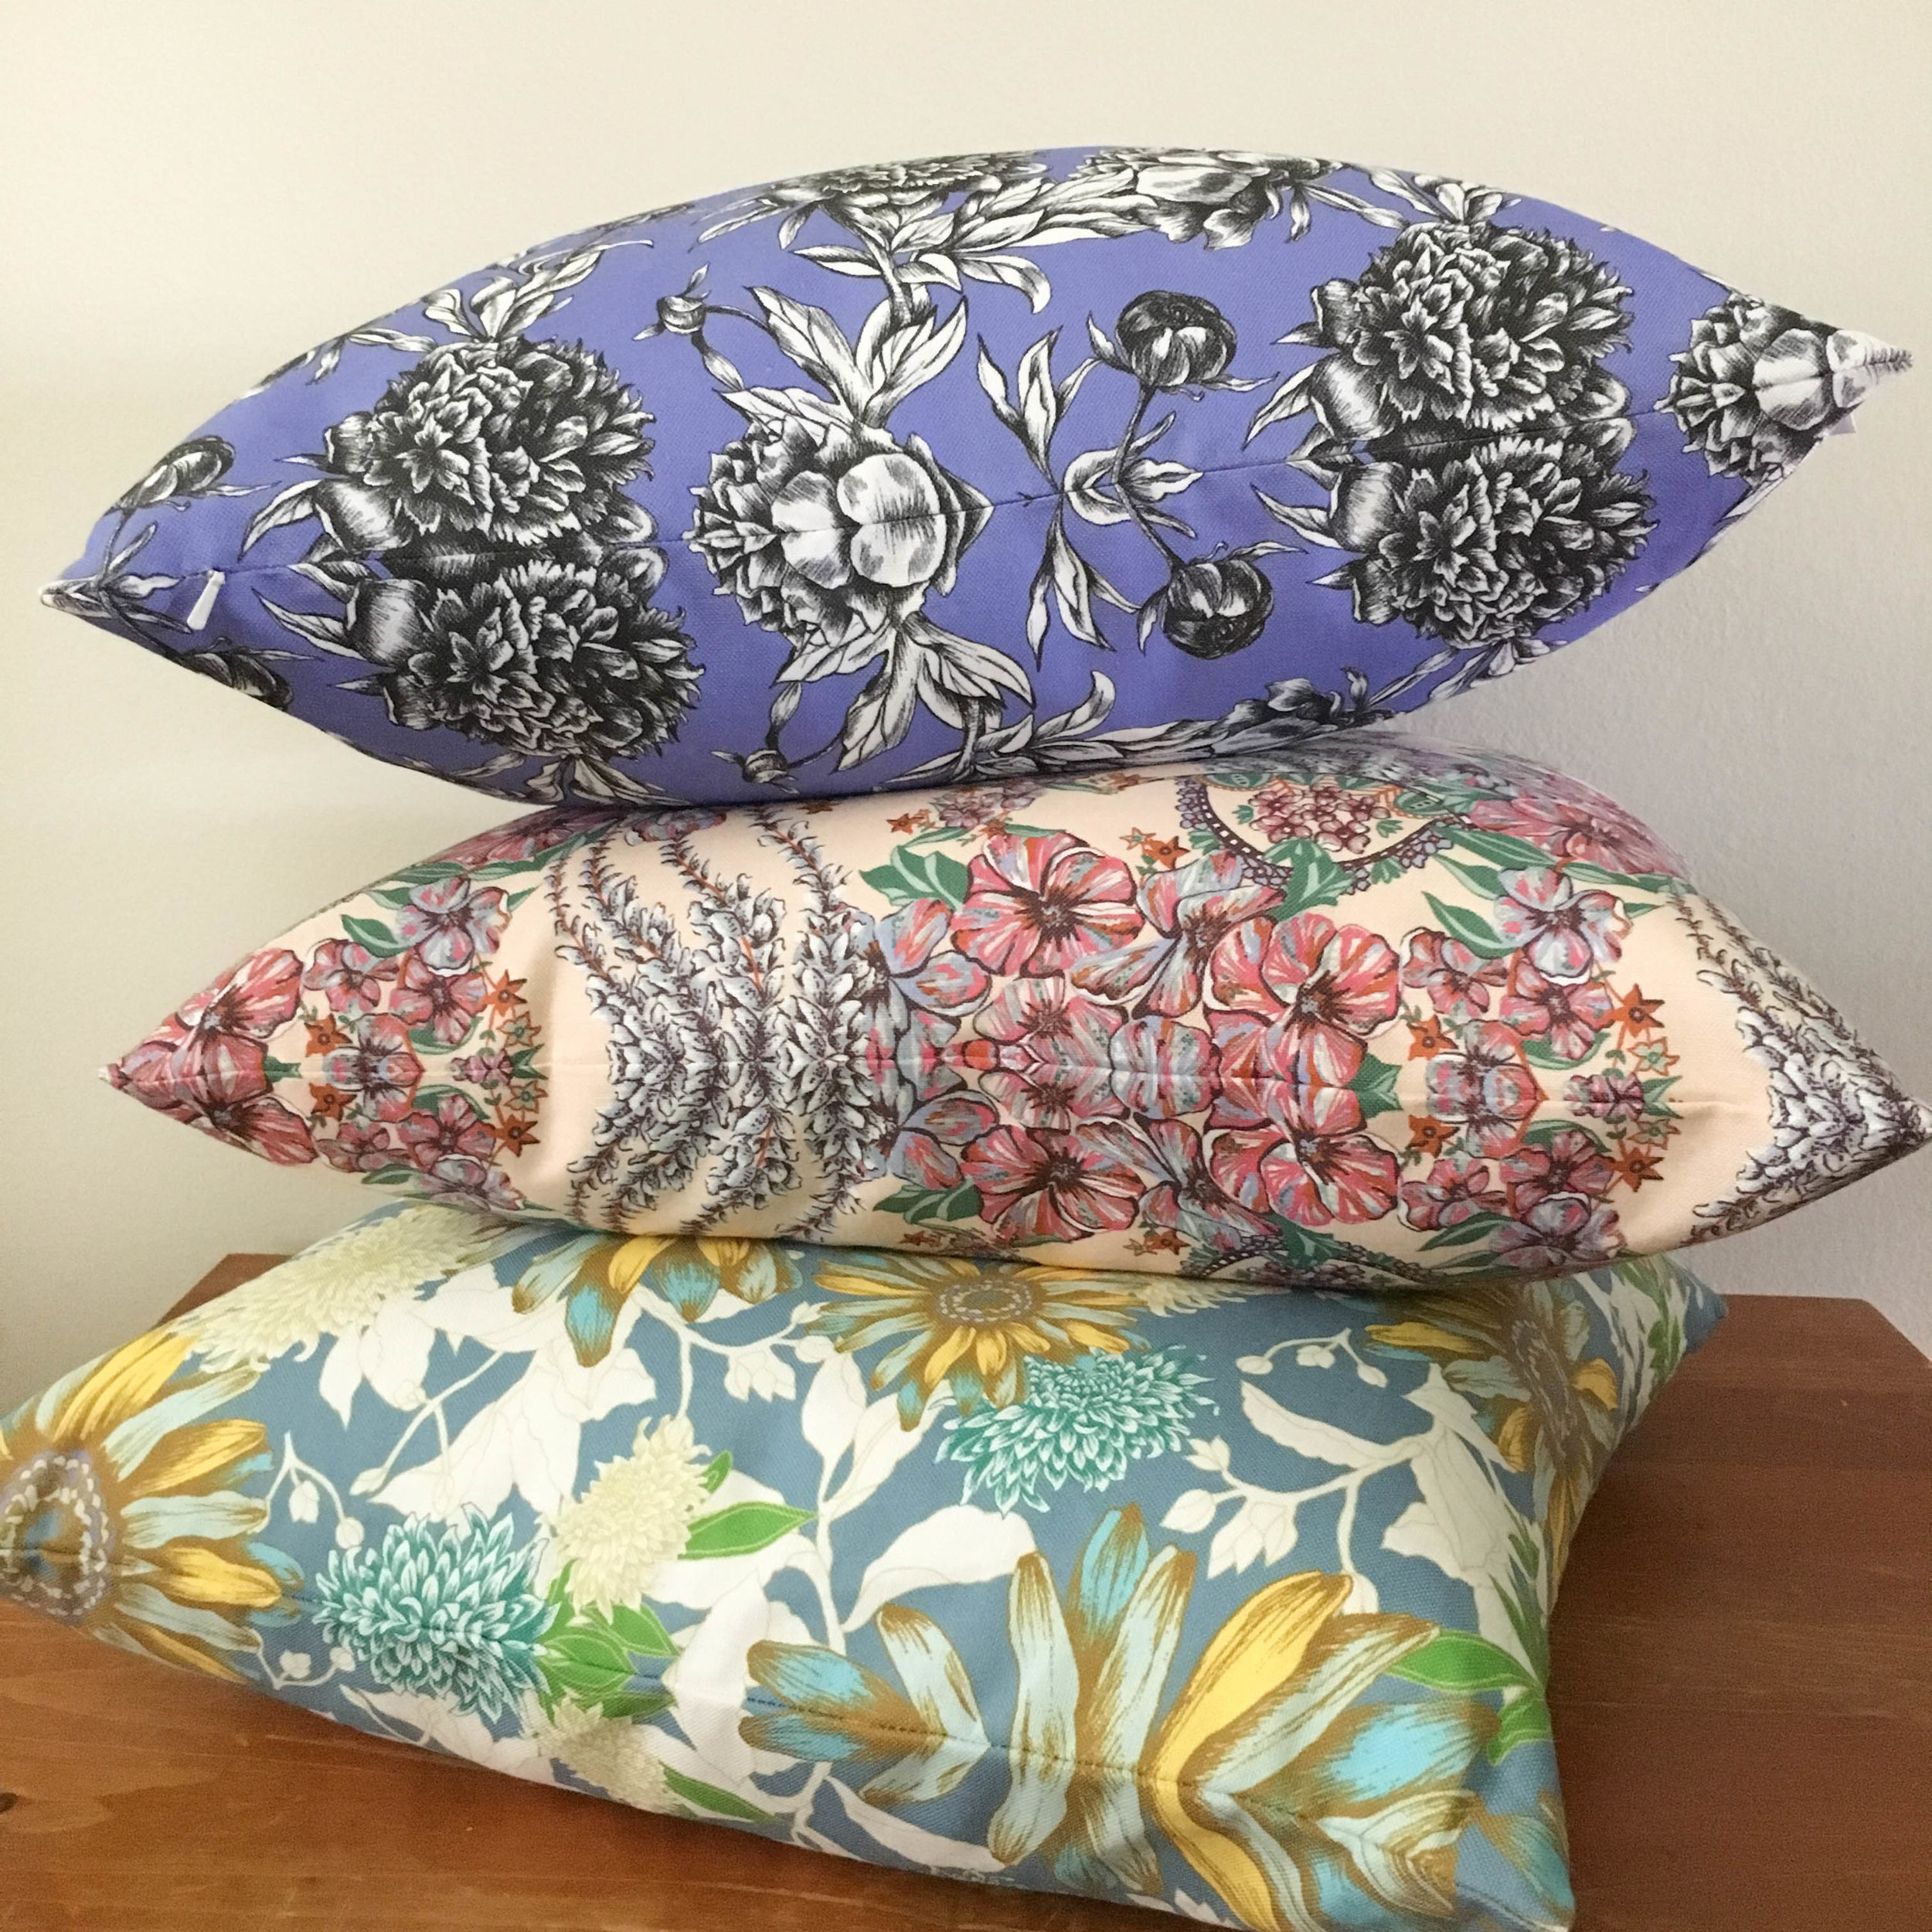 Paeonia, Viola, and Gerbera pillows are elegantly stacked to display their colorful, botanical painted line work